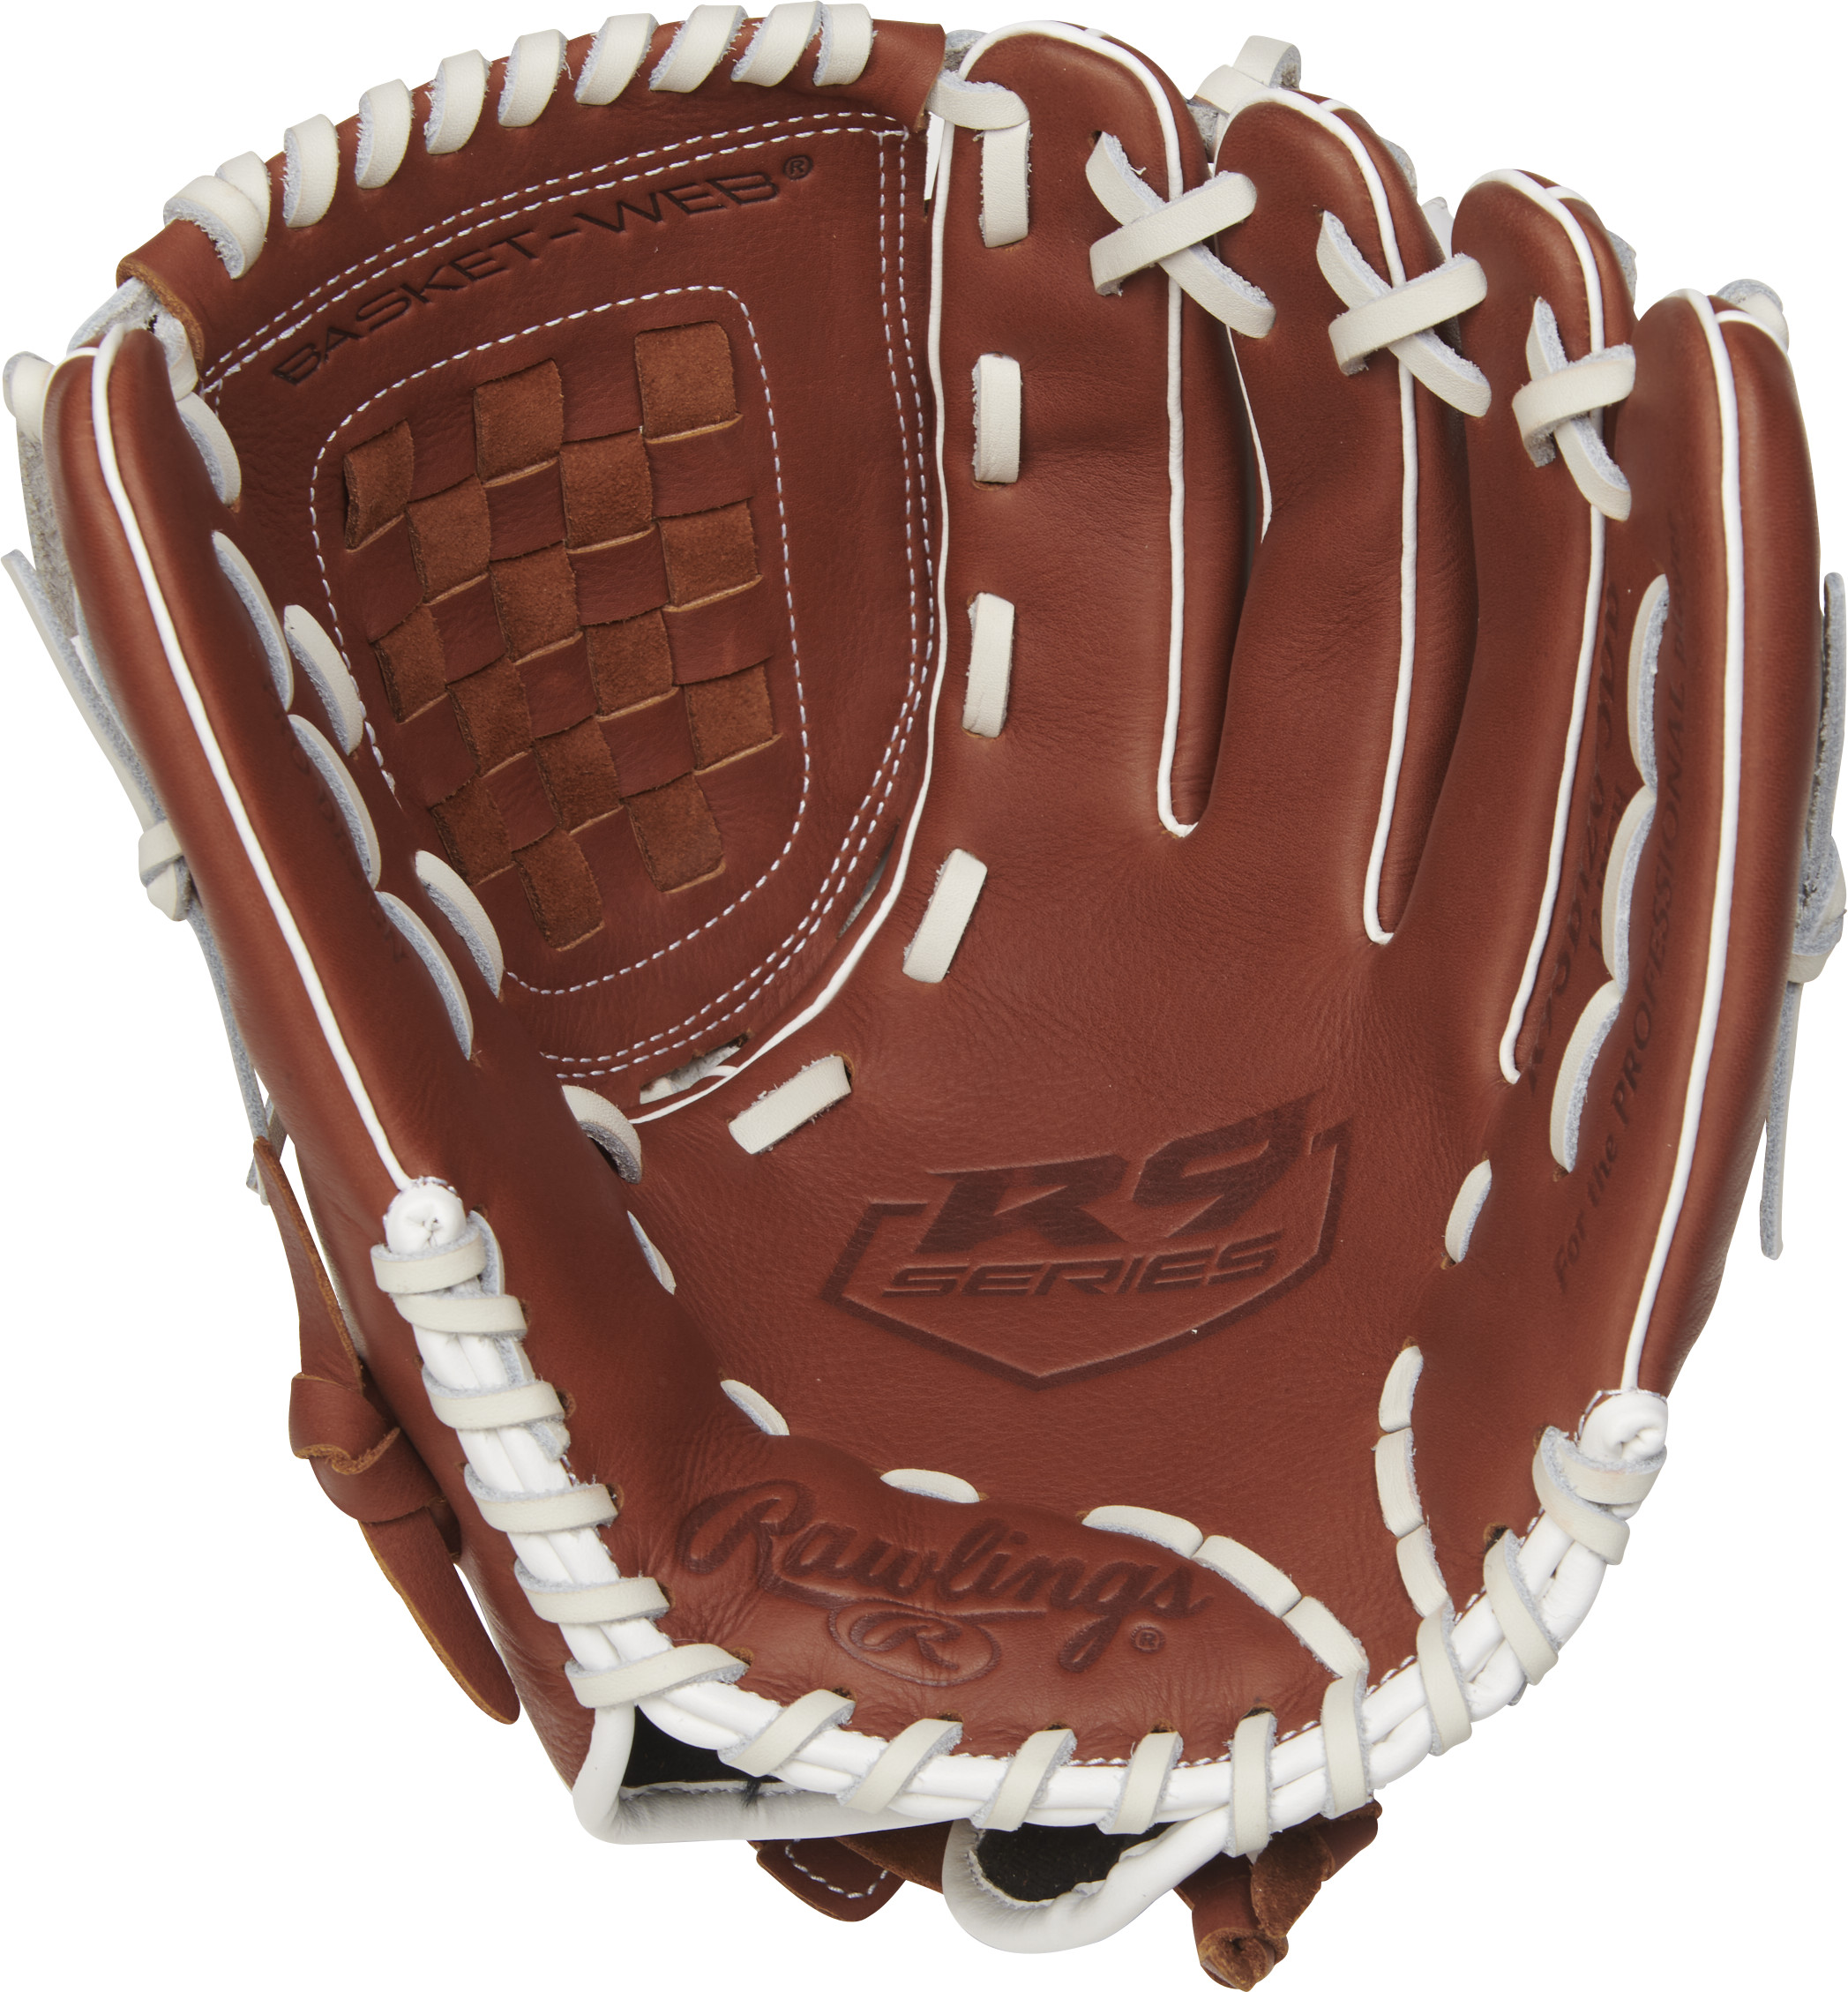 http://www.bestbatdeals.com/images/gloves/rawlings/R9SB120-3DB-1.jpg